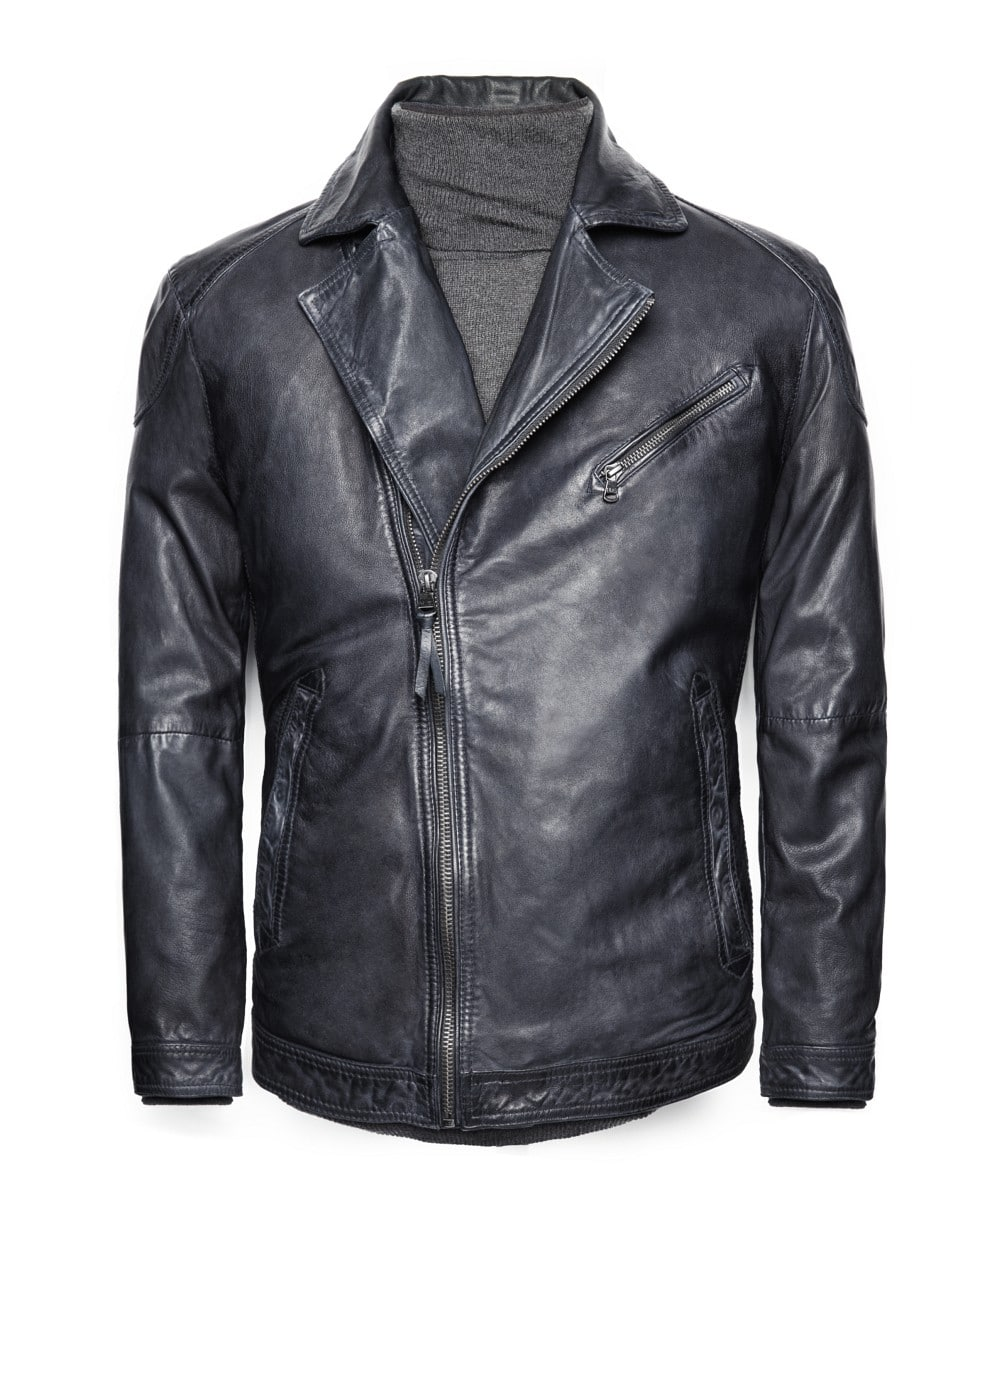 Elbow patch leather biker jacket